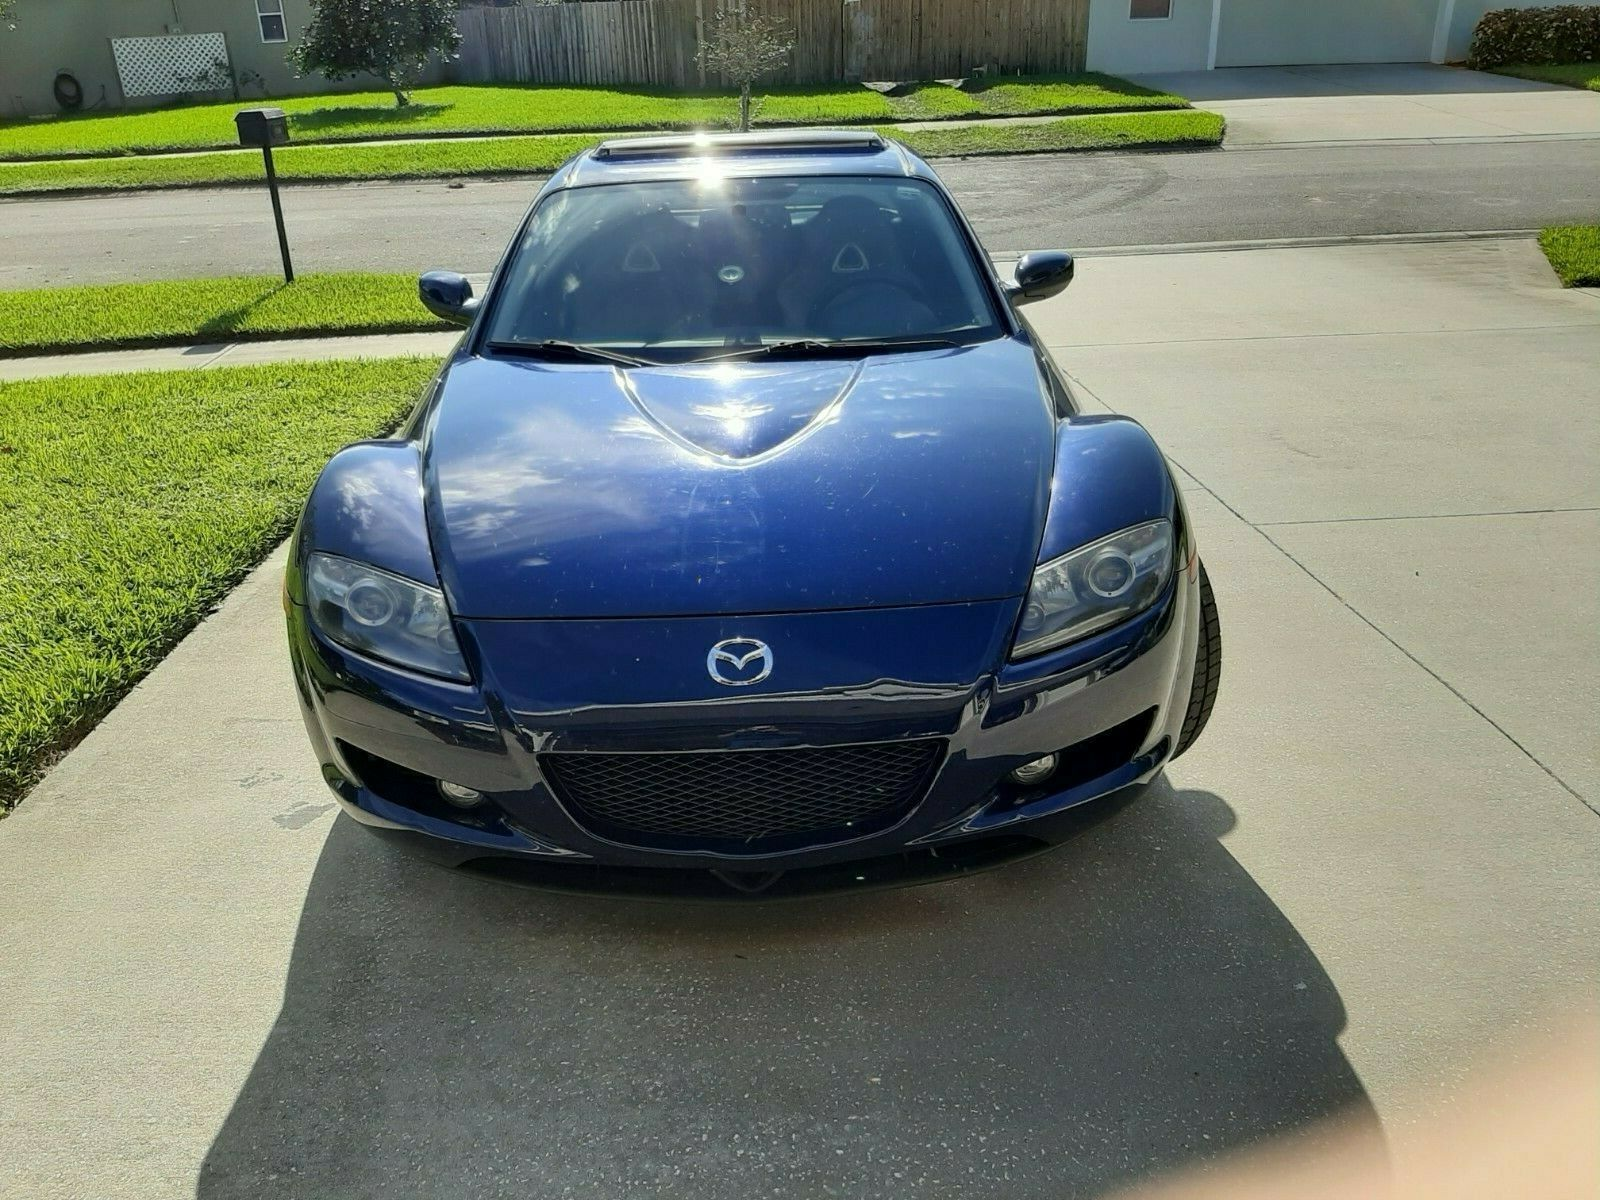 Used 2007 Mazda Rx 8 Touring 2007 Mazda Rx 8 Touring 2020 In 2020 Touring Mazda New Tyres